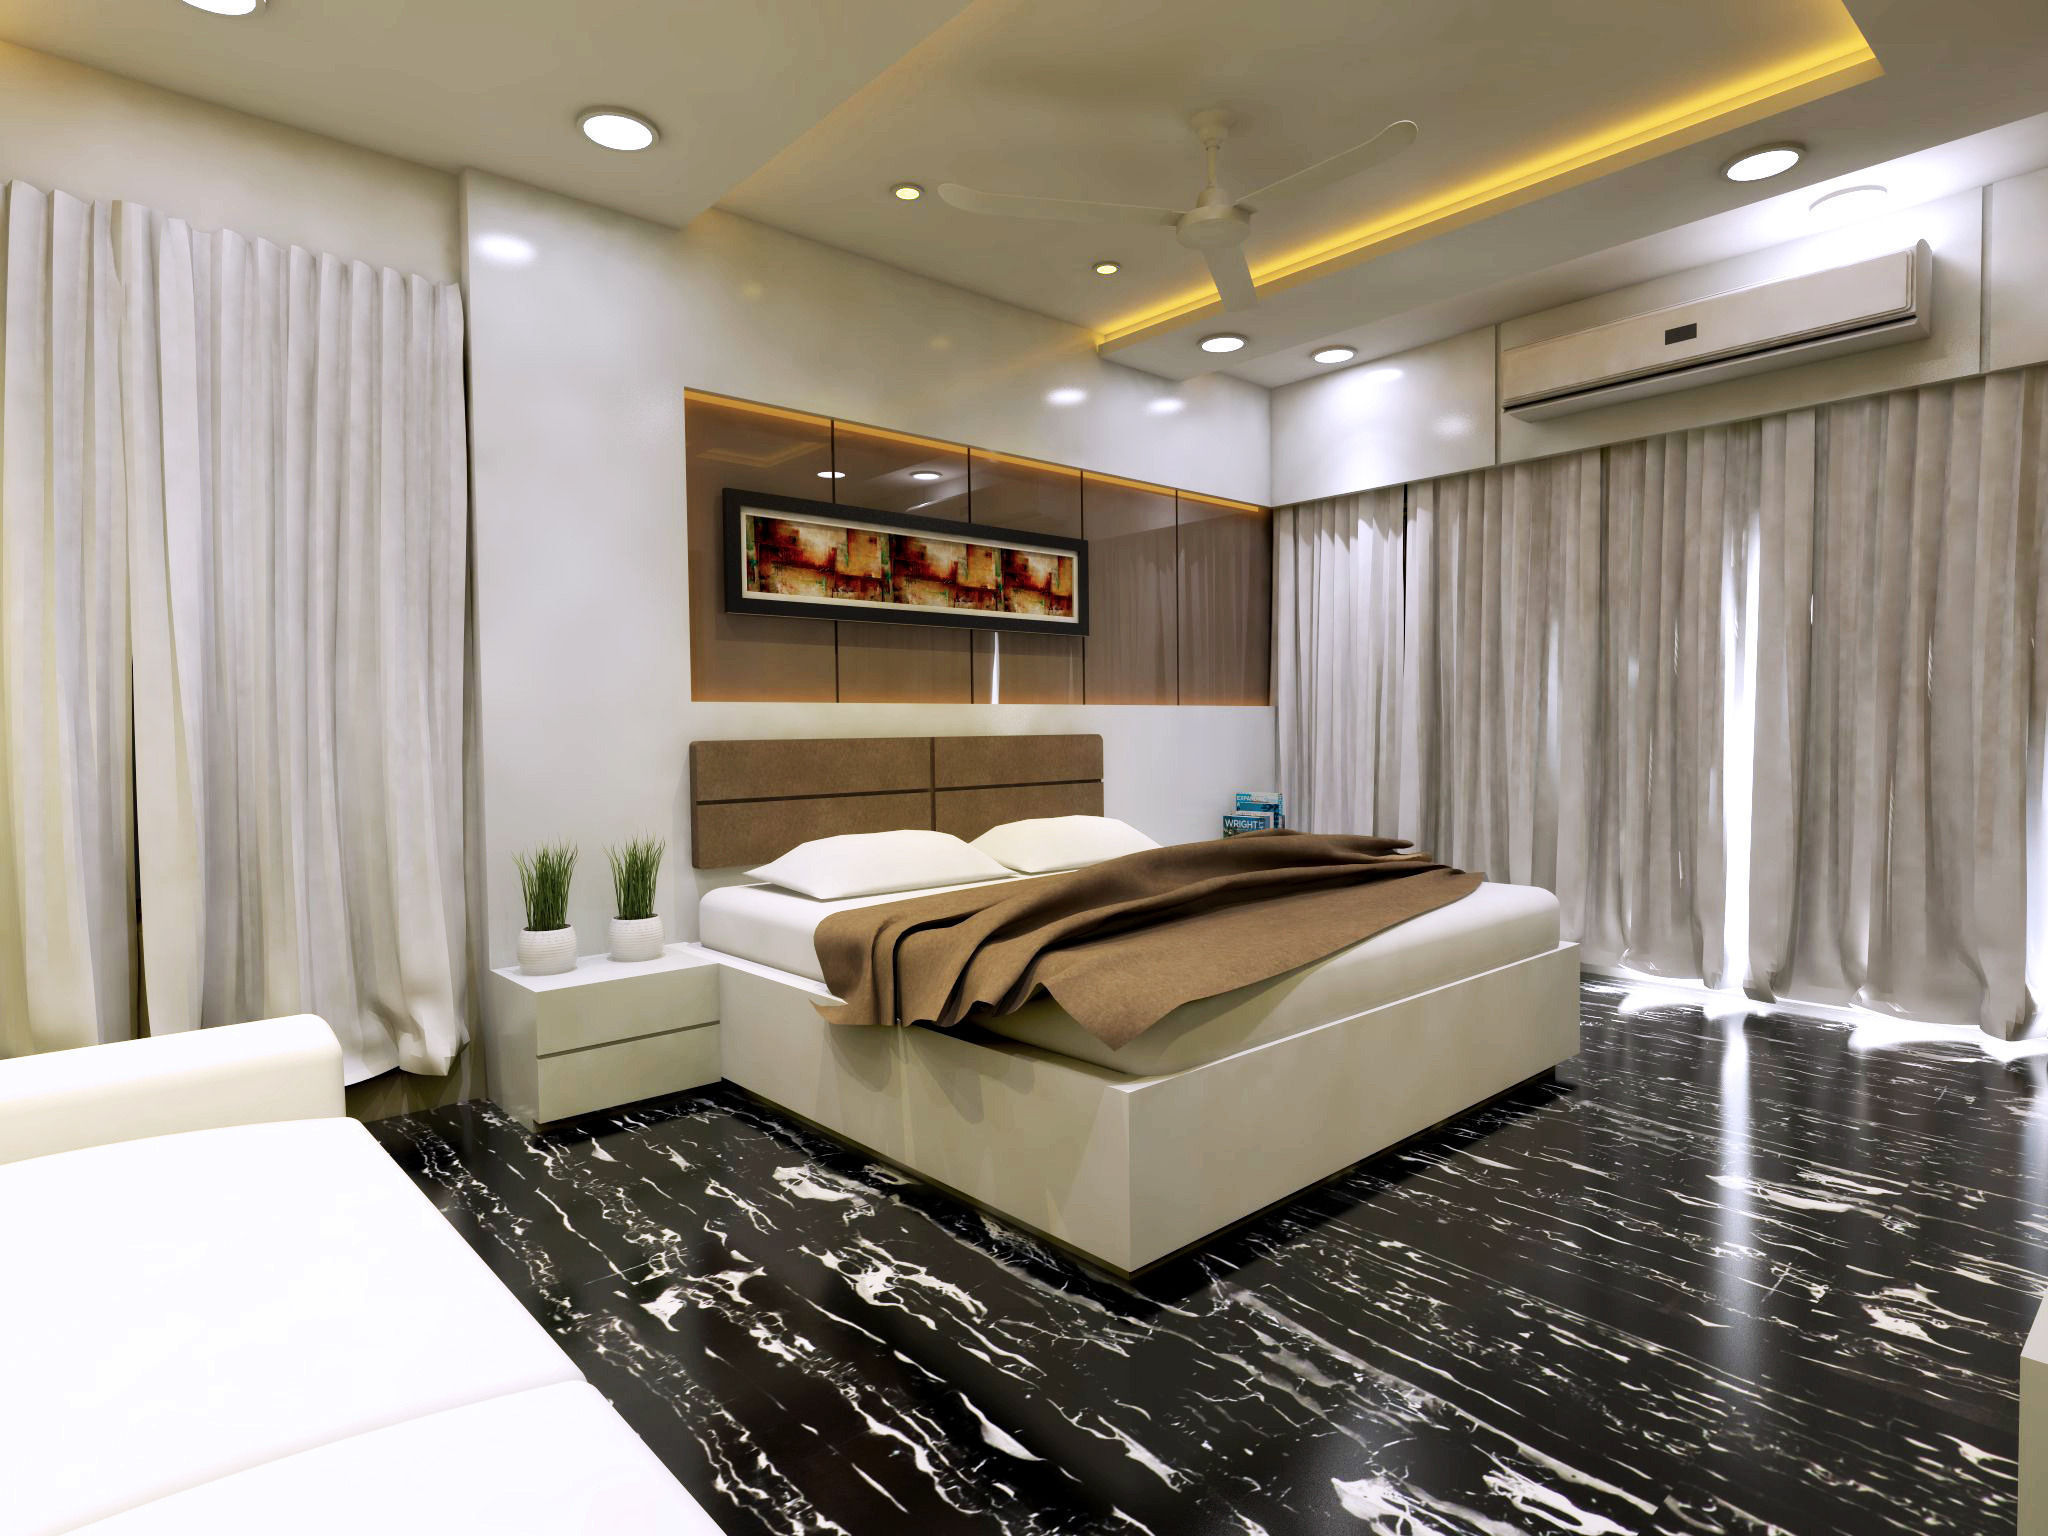 Modern bedroom interior vray rendered 3d model skp for Model bedroom interior design